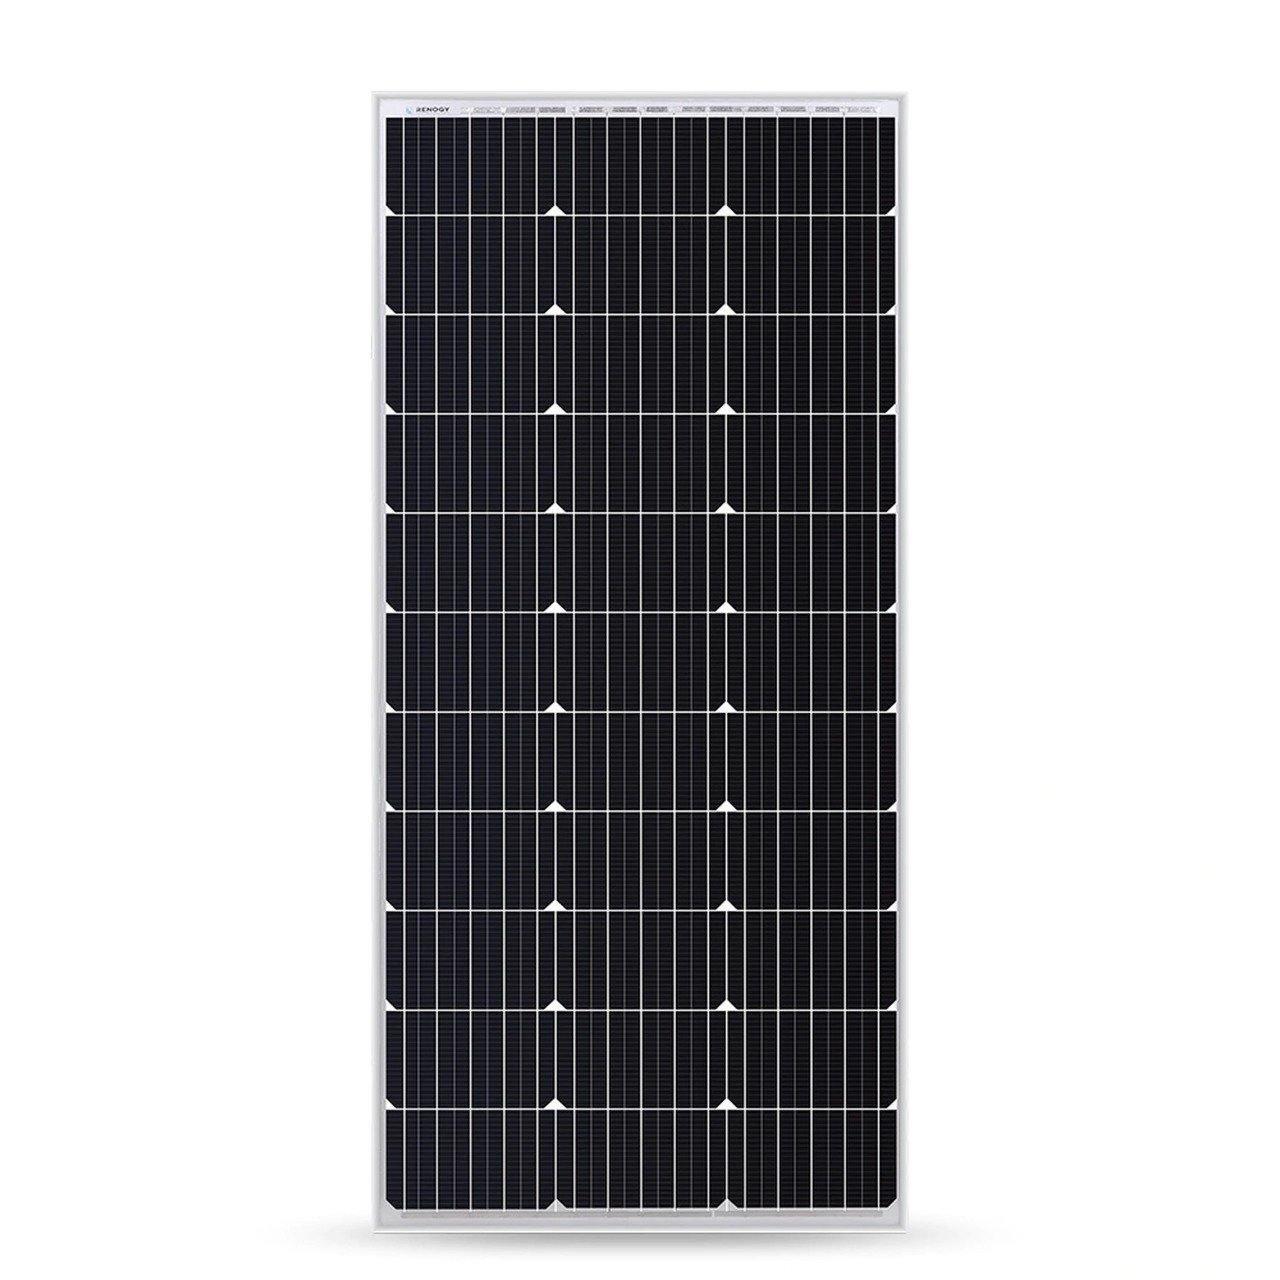 200 Watt 12 Volt Mono Crystalline Solar Power Panel Compact Design - iPower